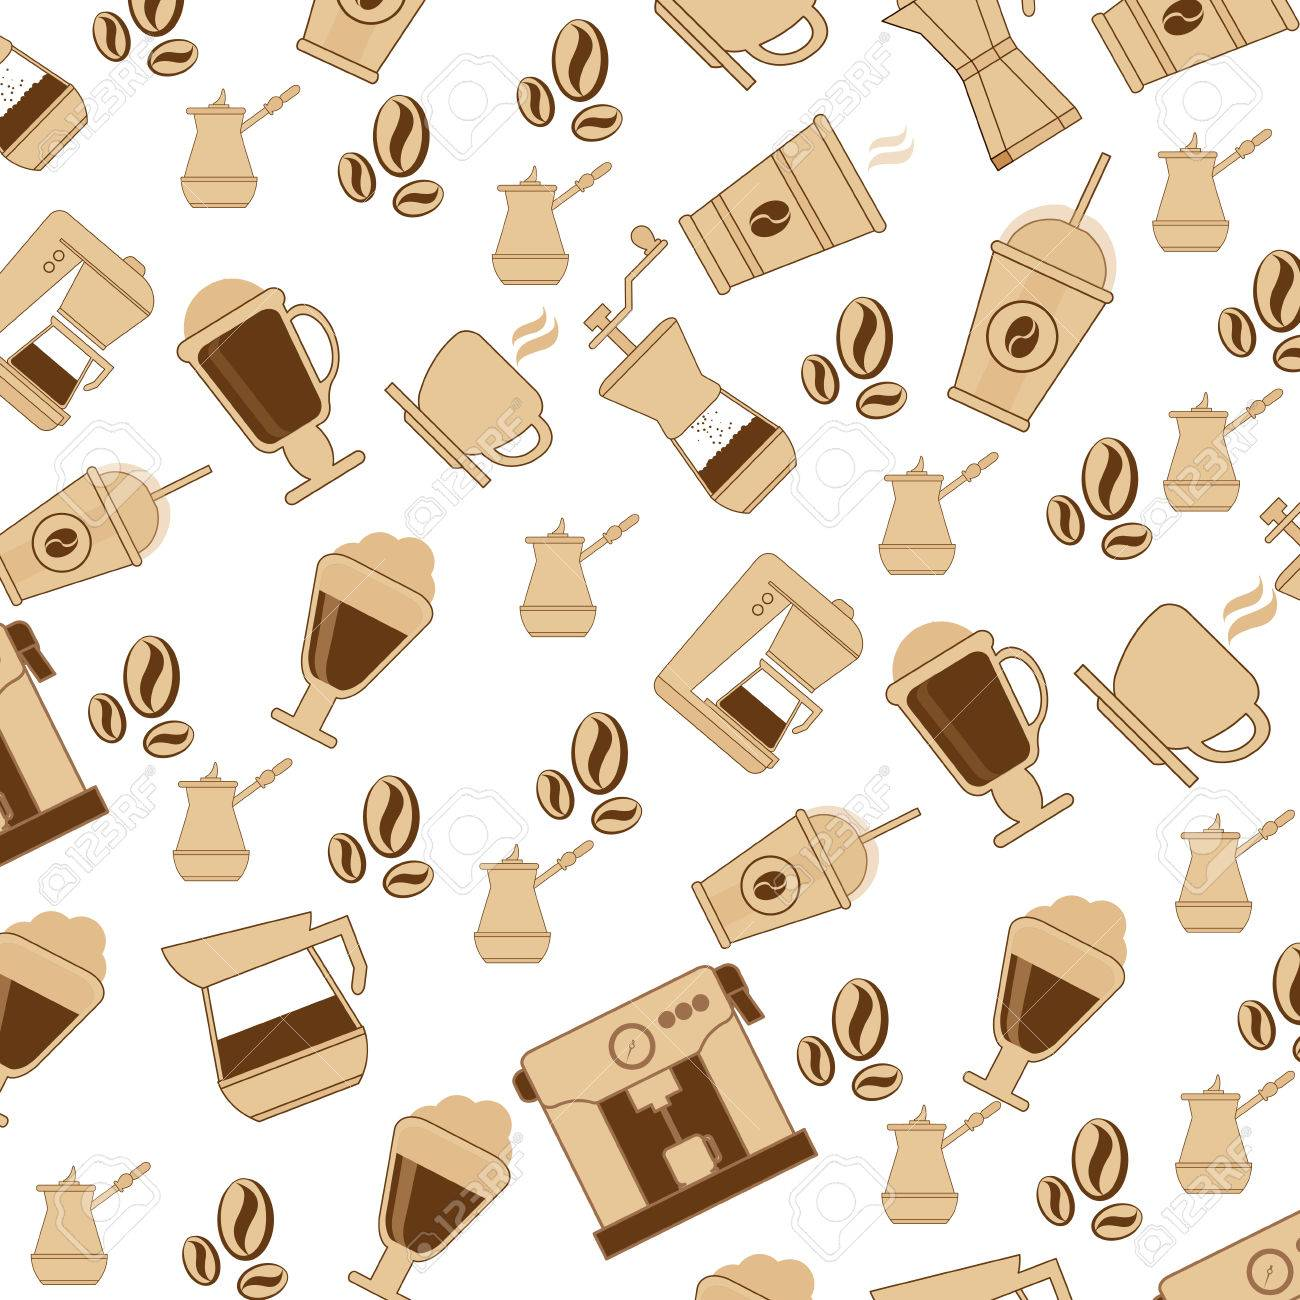 flat design coffee theme wallpaper icon vector illustration